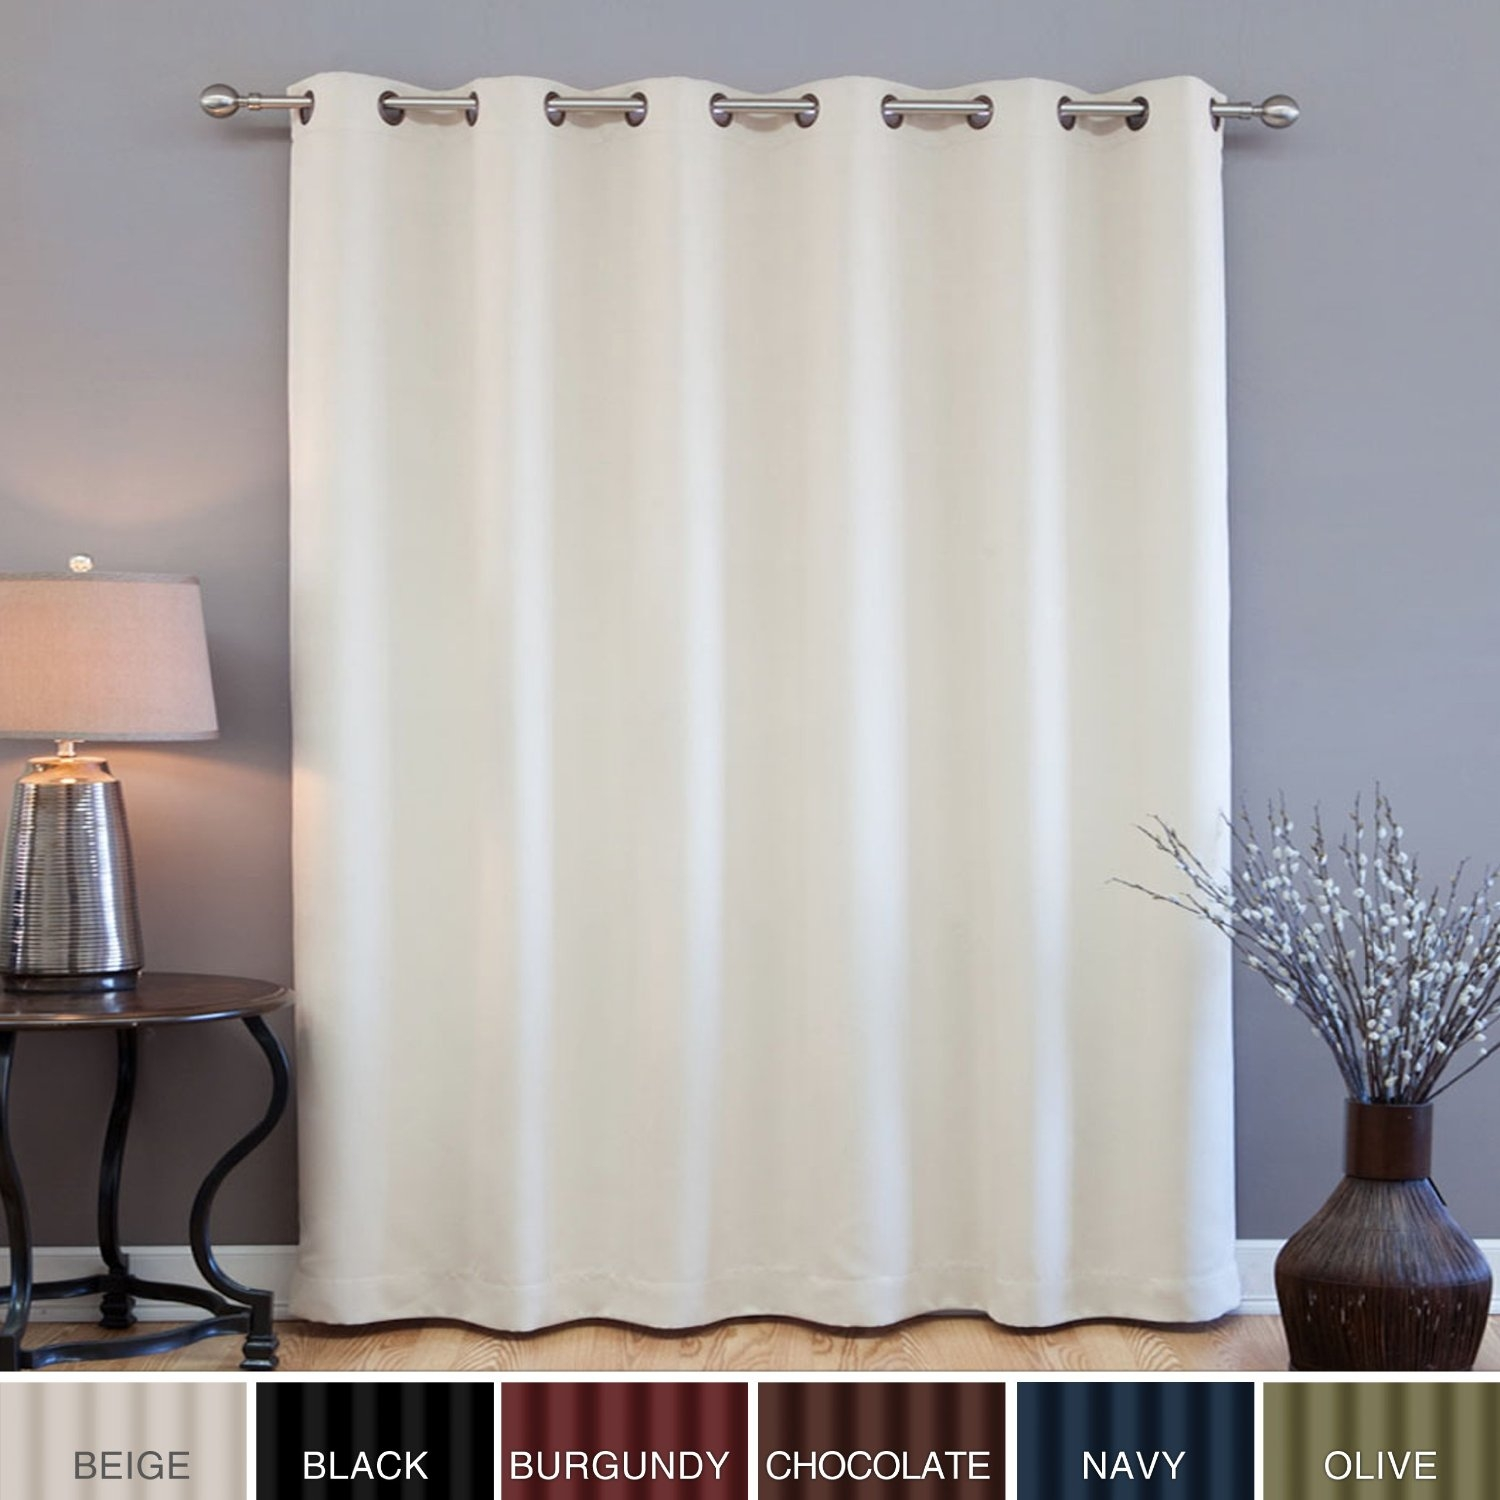 Fashionable Sliding Glass Door Curtains Design Ideas And Decor Within Sliding Glass Door Curtains (View 10 of 25)